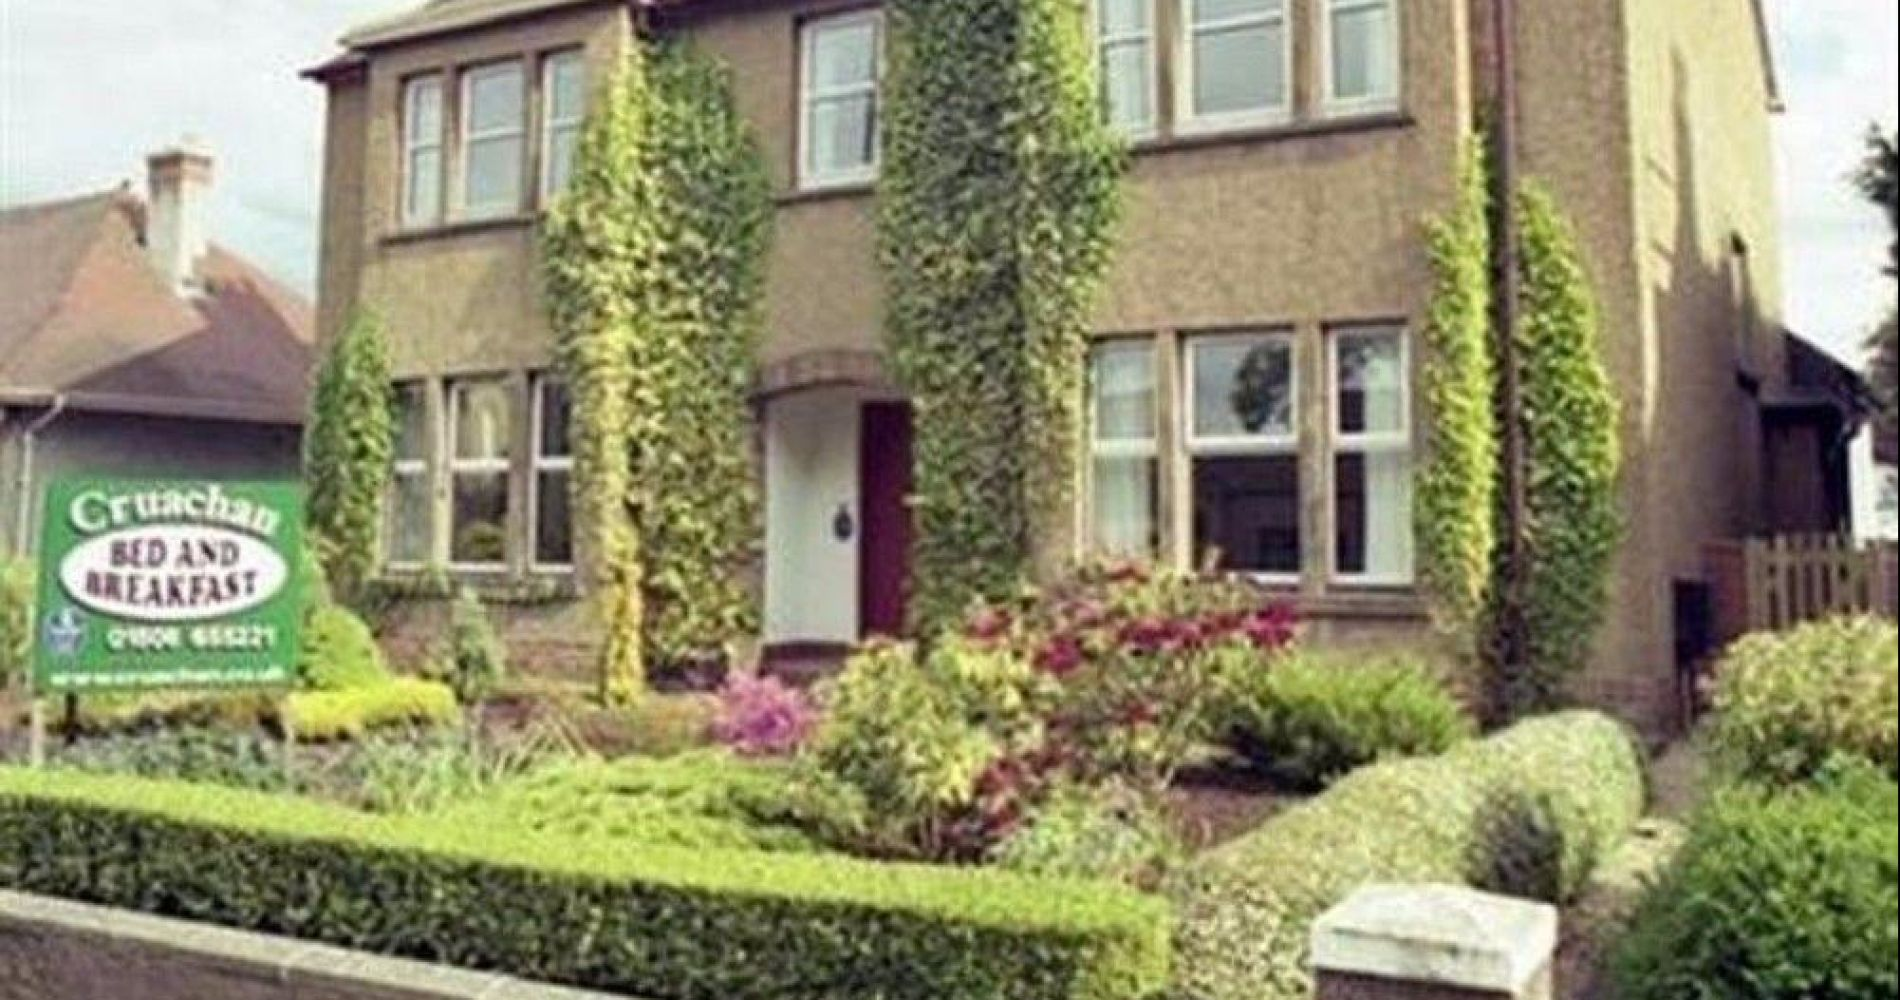 Cruachan Bed and Breakfast